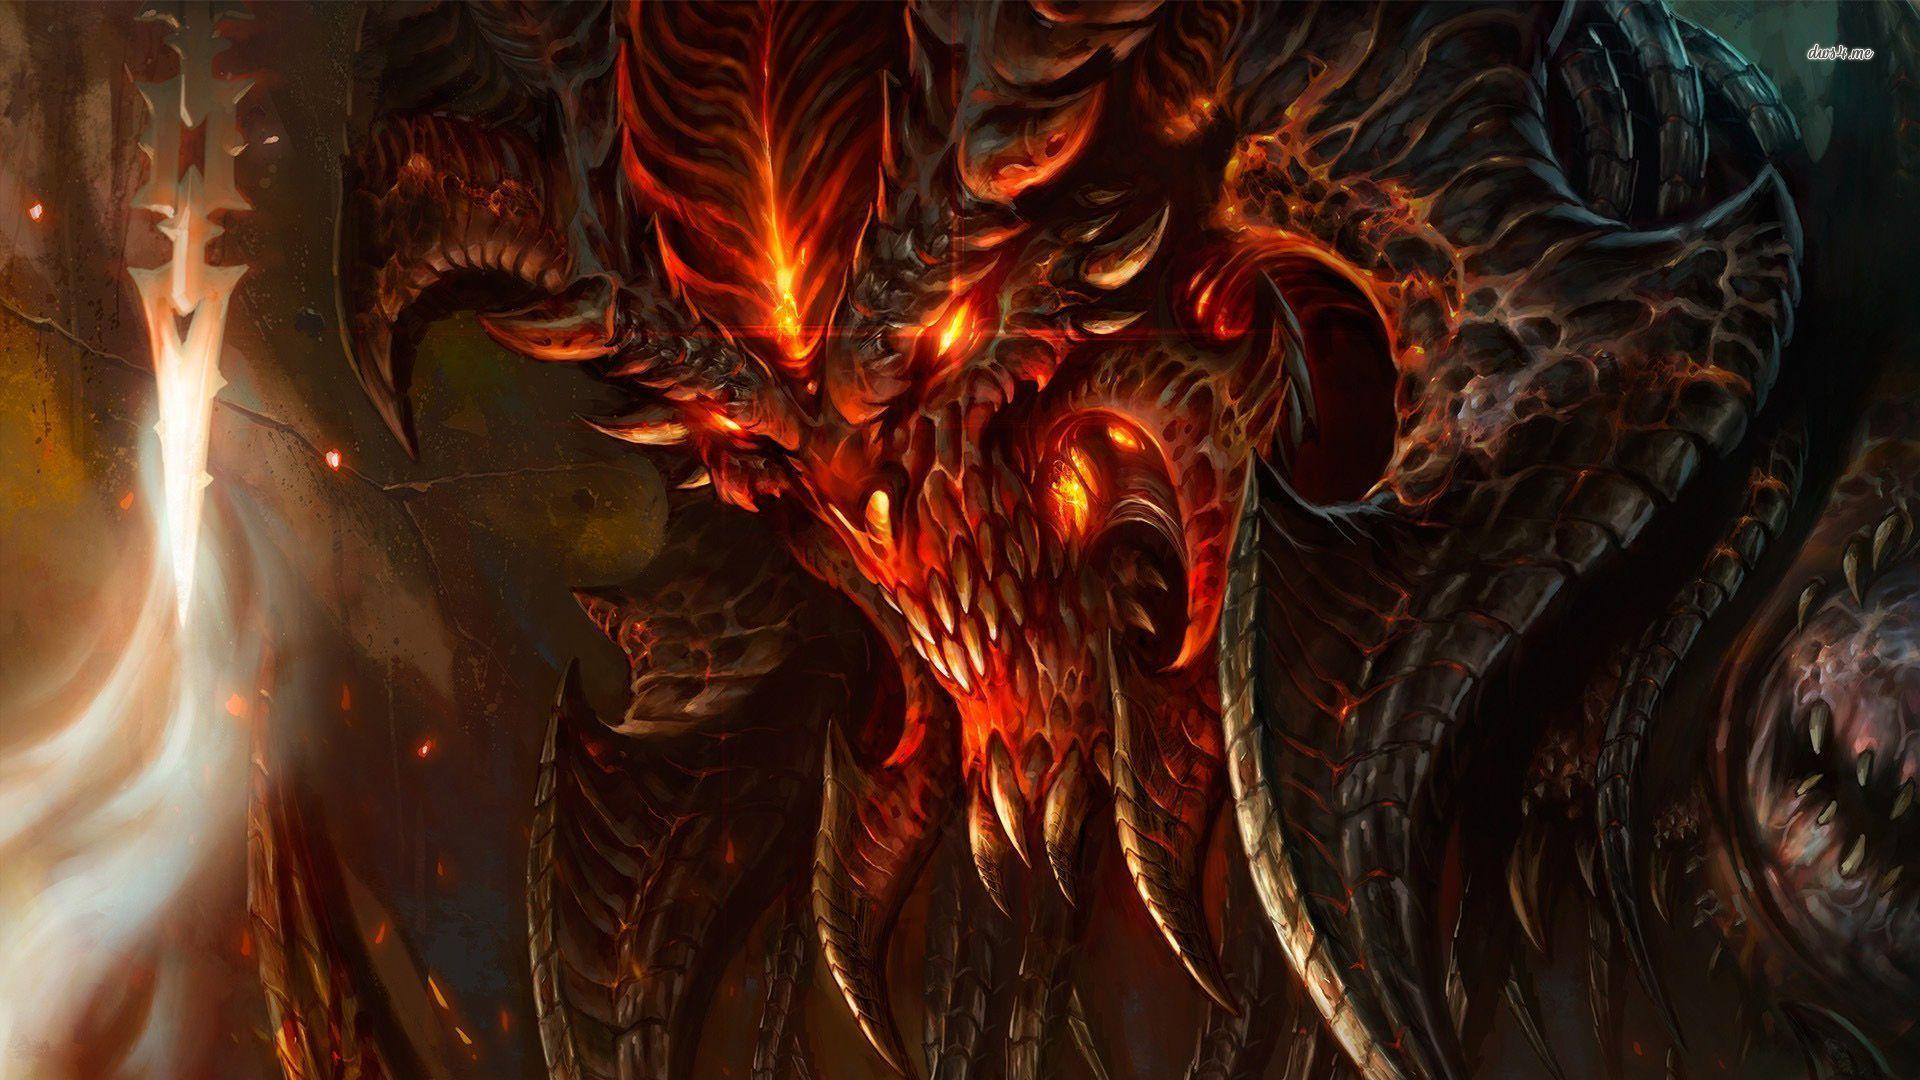 46 Diablo 3 Gallery of Wallpapers